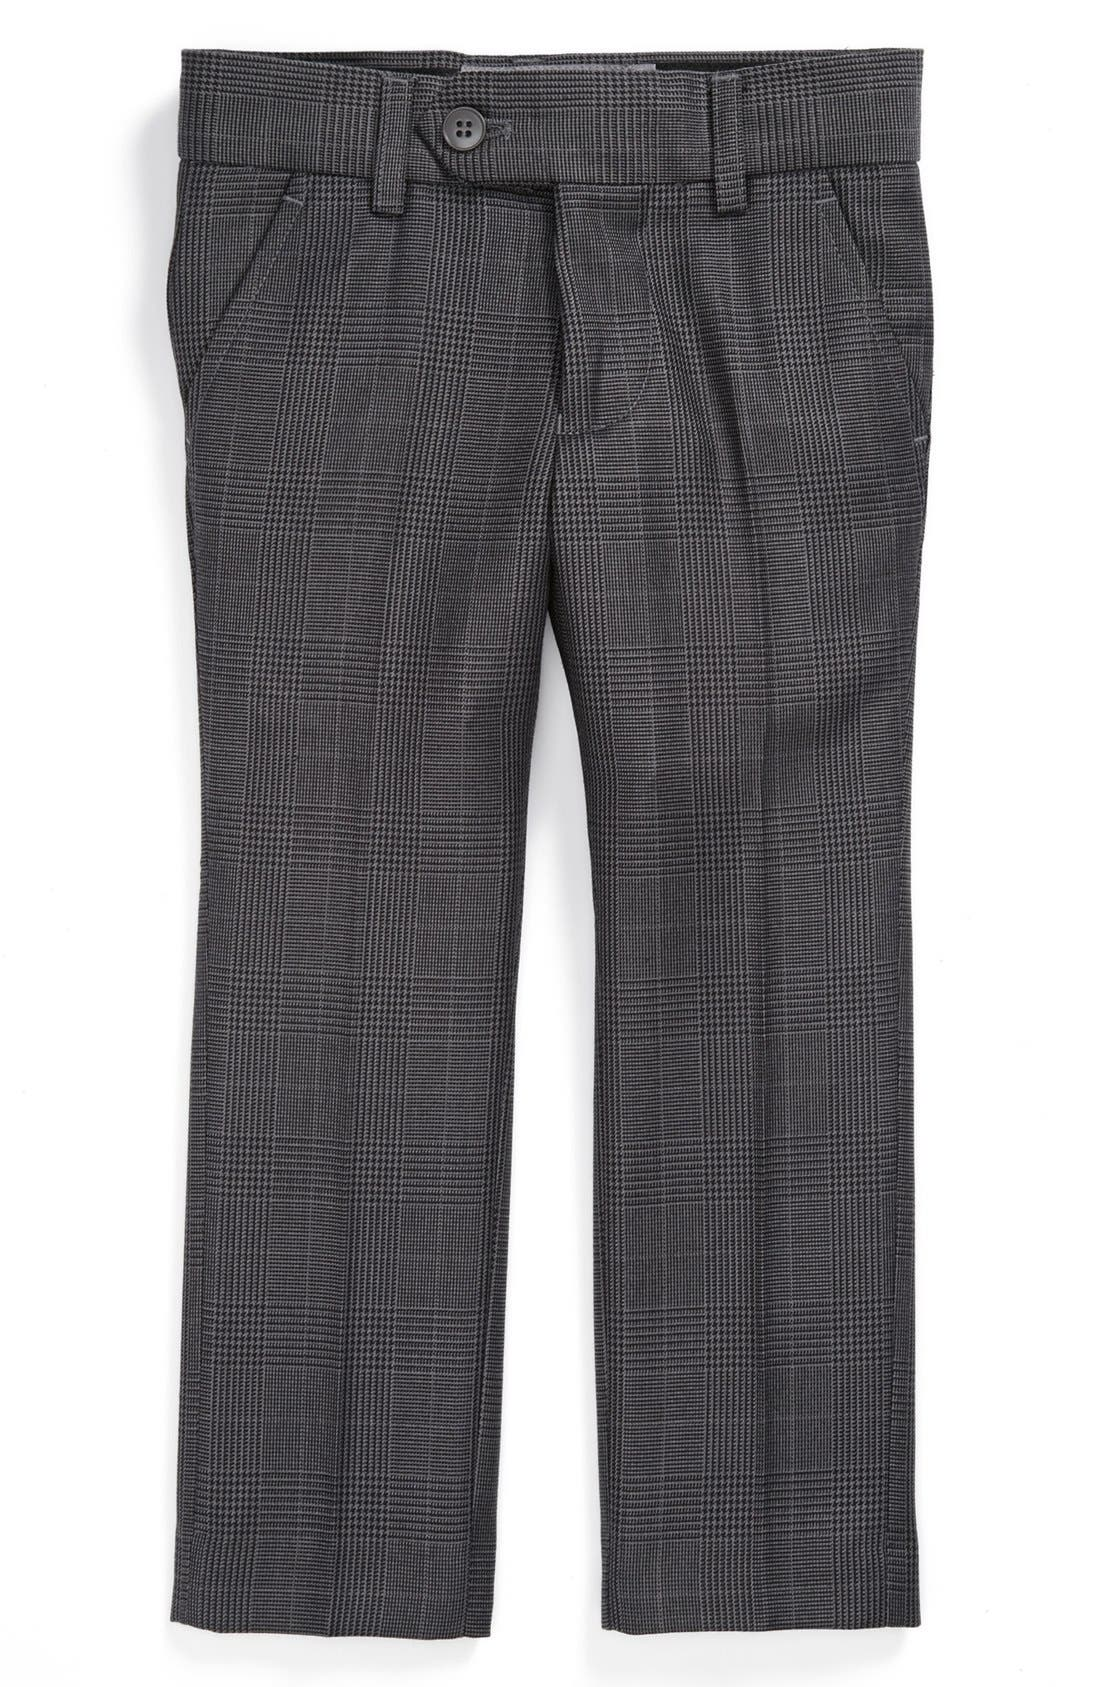 Alternate Image 1 Selected - Appaman Glen Plaid Trousers (Toddler Boys)